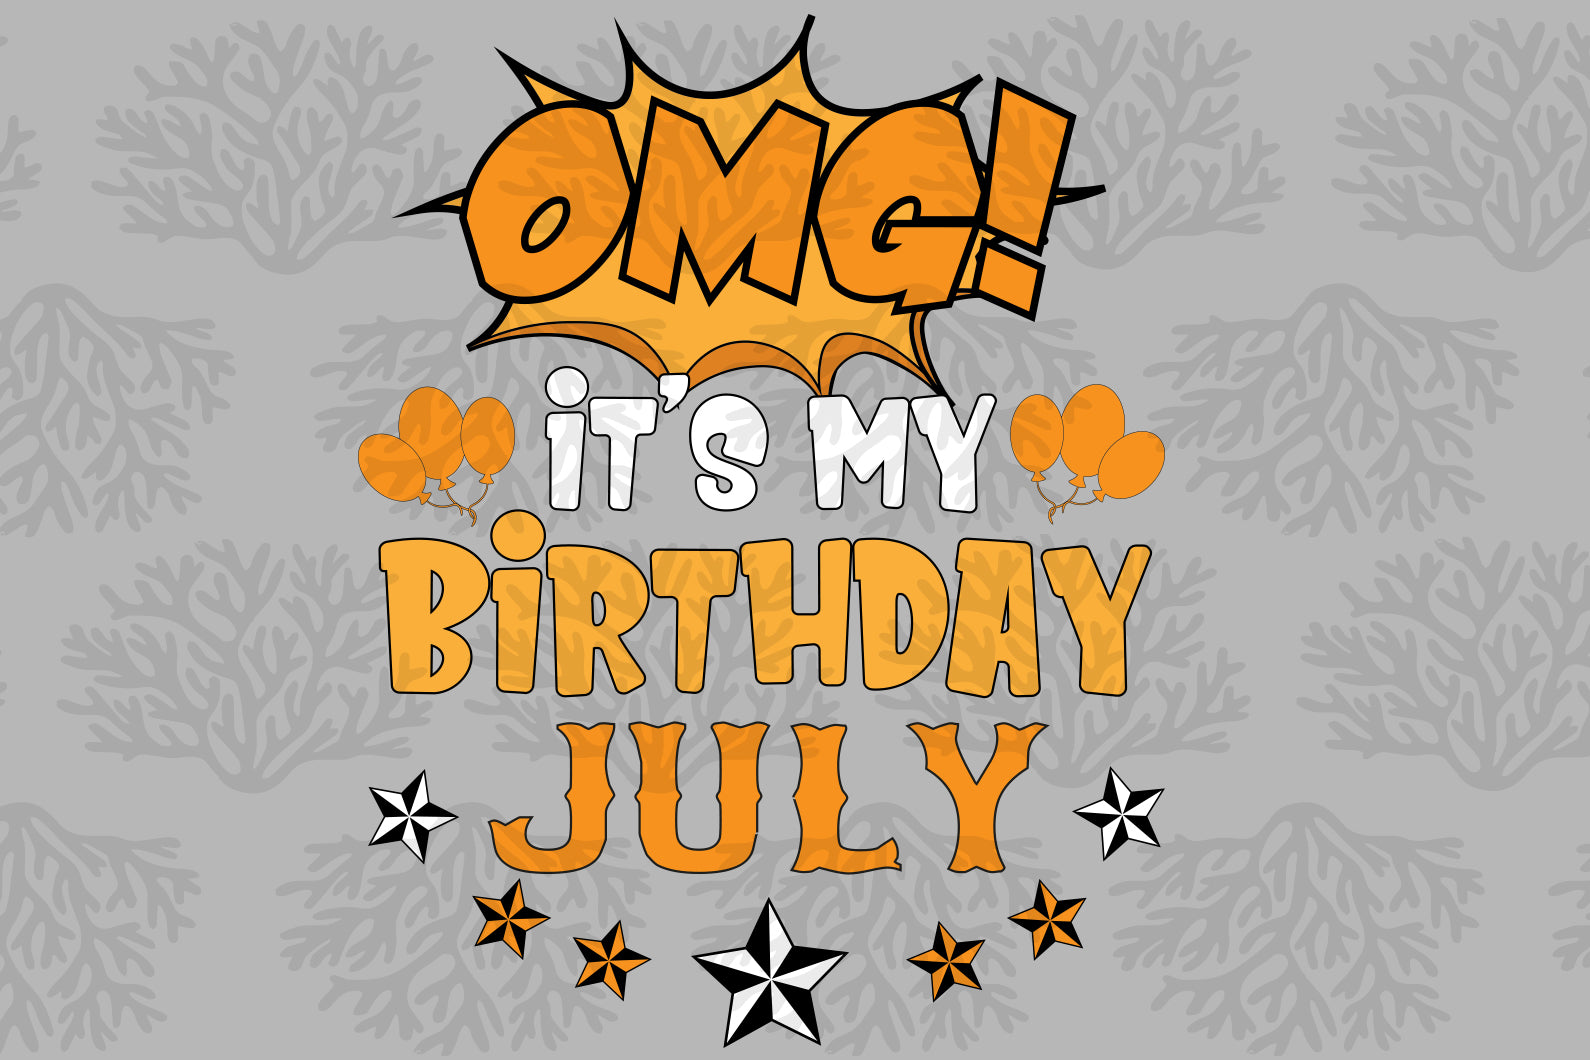 July it's my birthday month, born in July, July svg, July gift, July shirt, July birthday party, birthday anniversary, black girl, sexy girl, black lives matter, gift from bestie, digital file, vinyl for cricut,